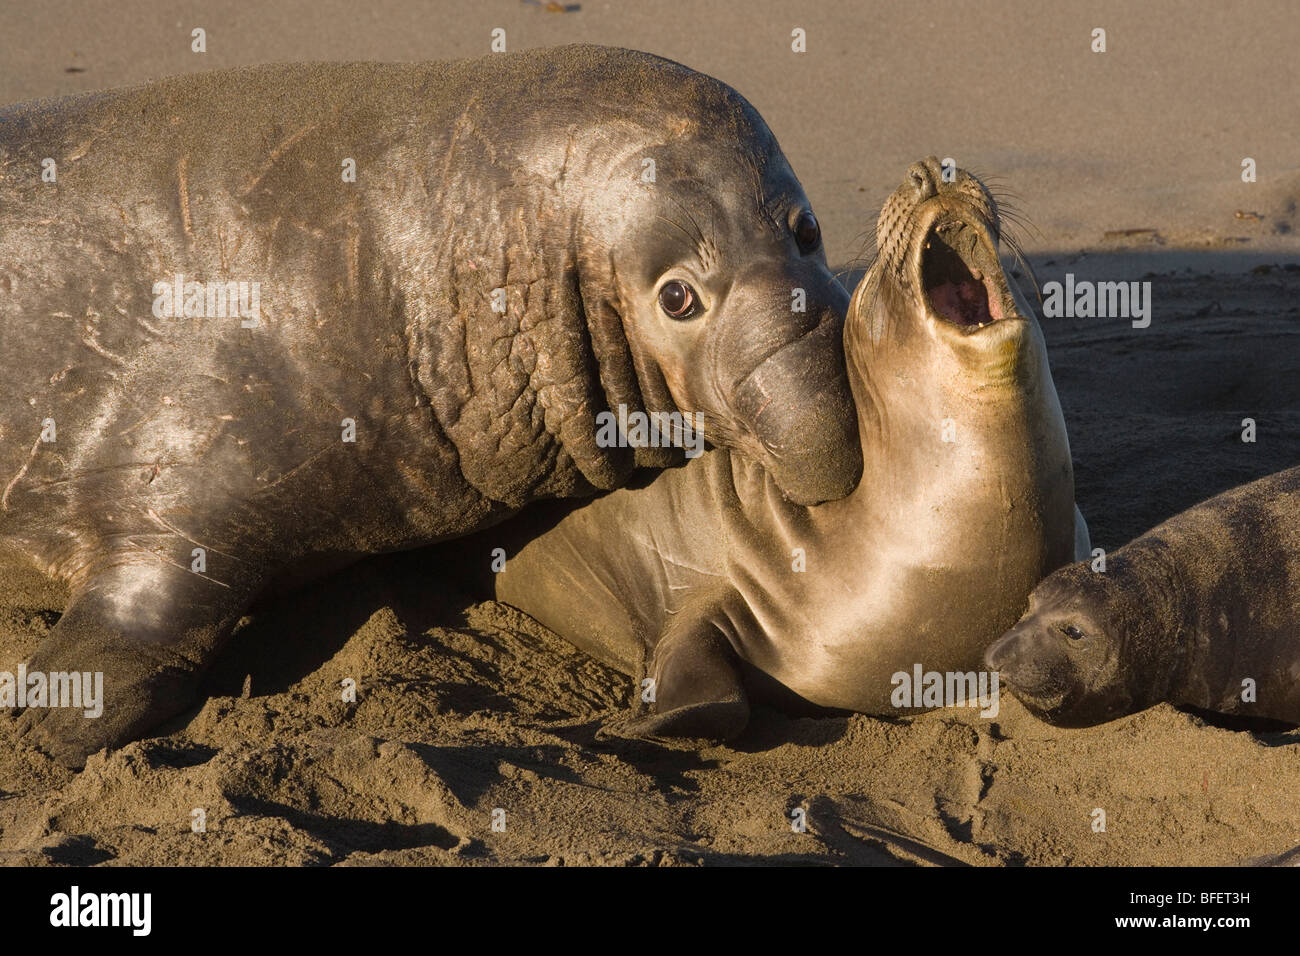 Northern elephant seals (Mirounga angustirostris), male biting female during mating, Piedras Blancas, California, - Stock Image